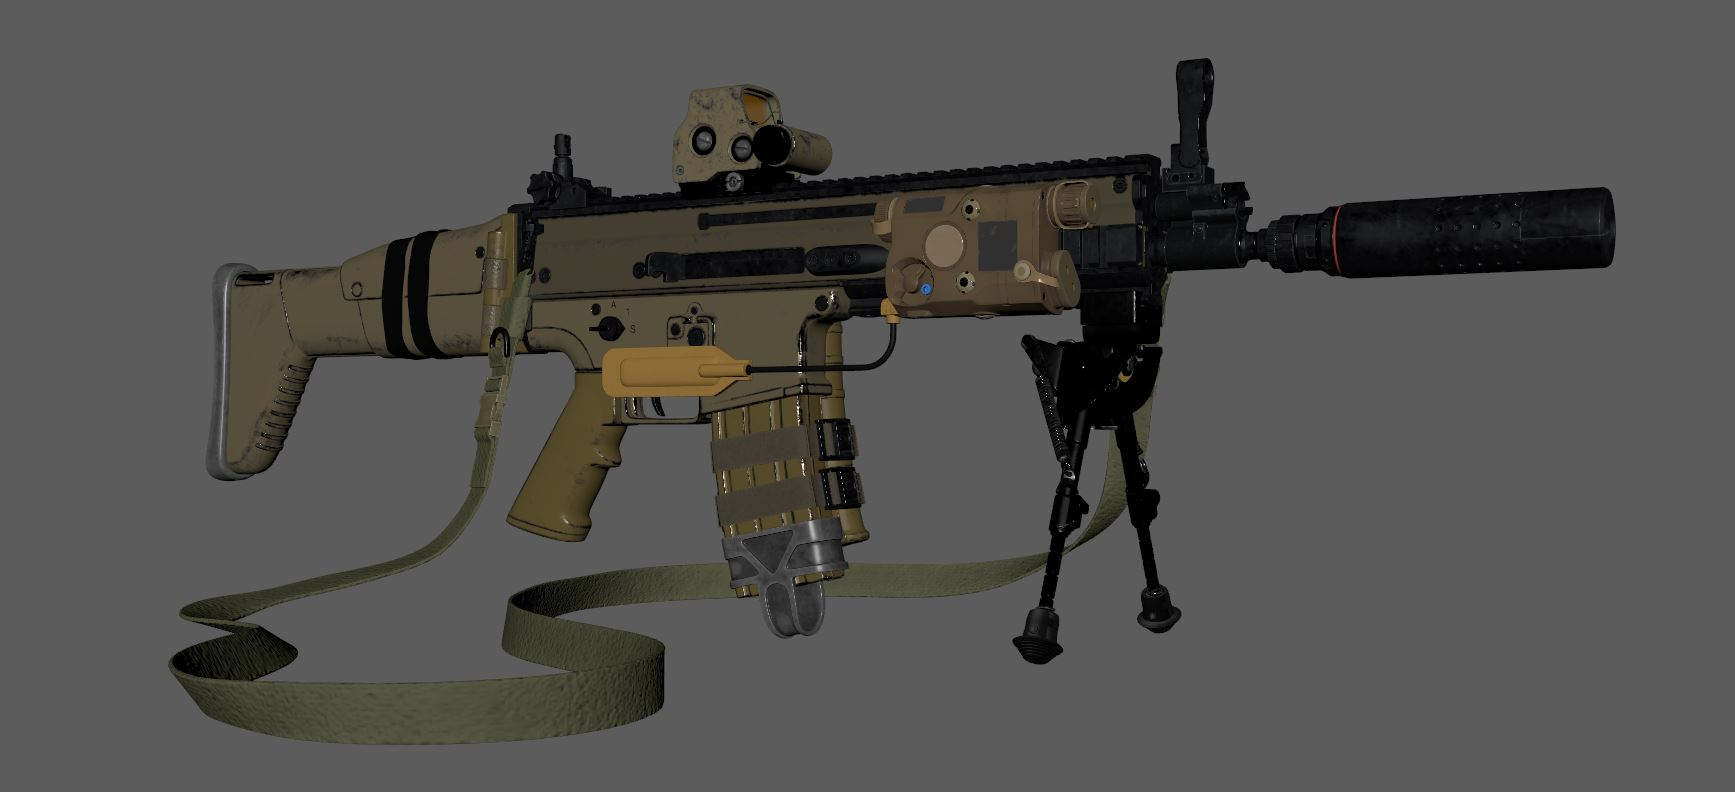 Three D Guns 2 Challenge - Scar-L